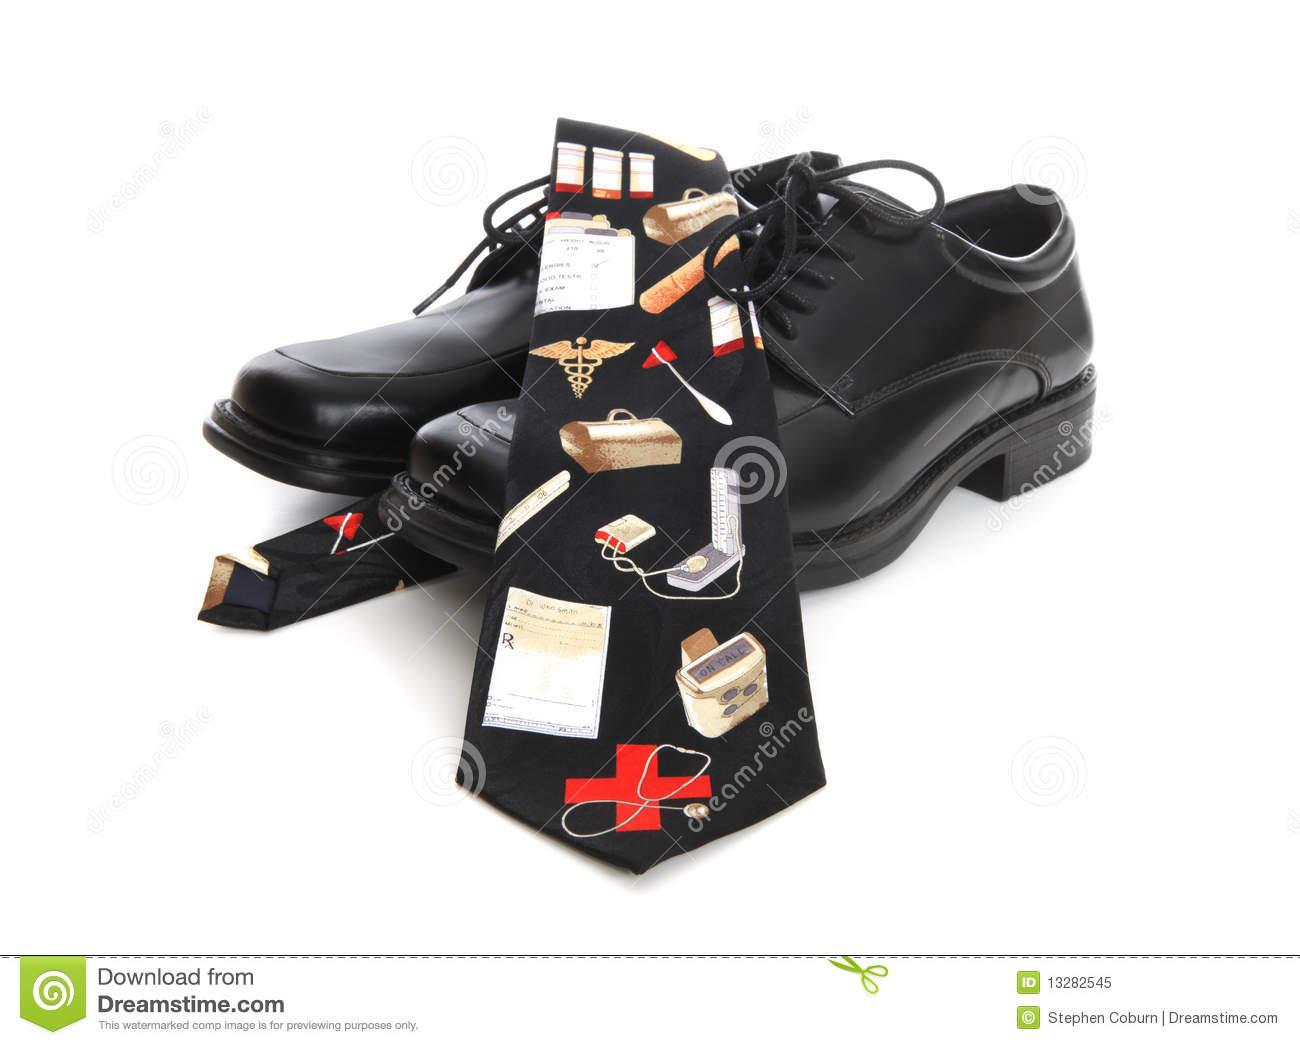 Royalty Free Stock Photo: Doctor Shoes and Tie